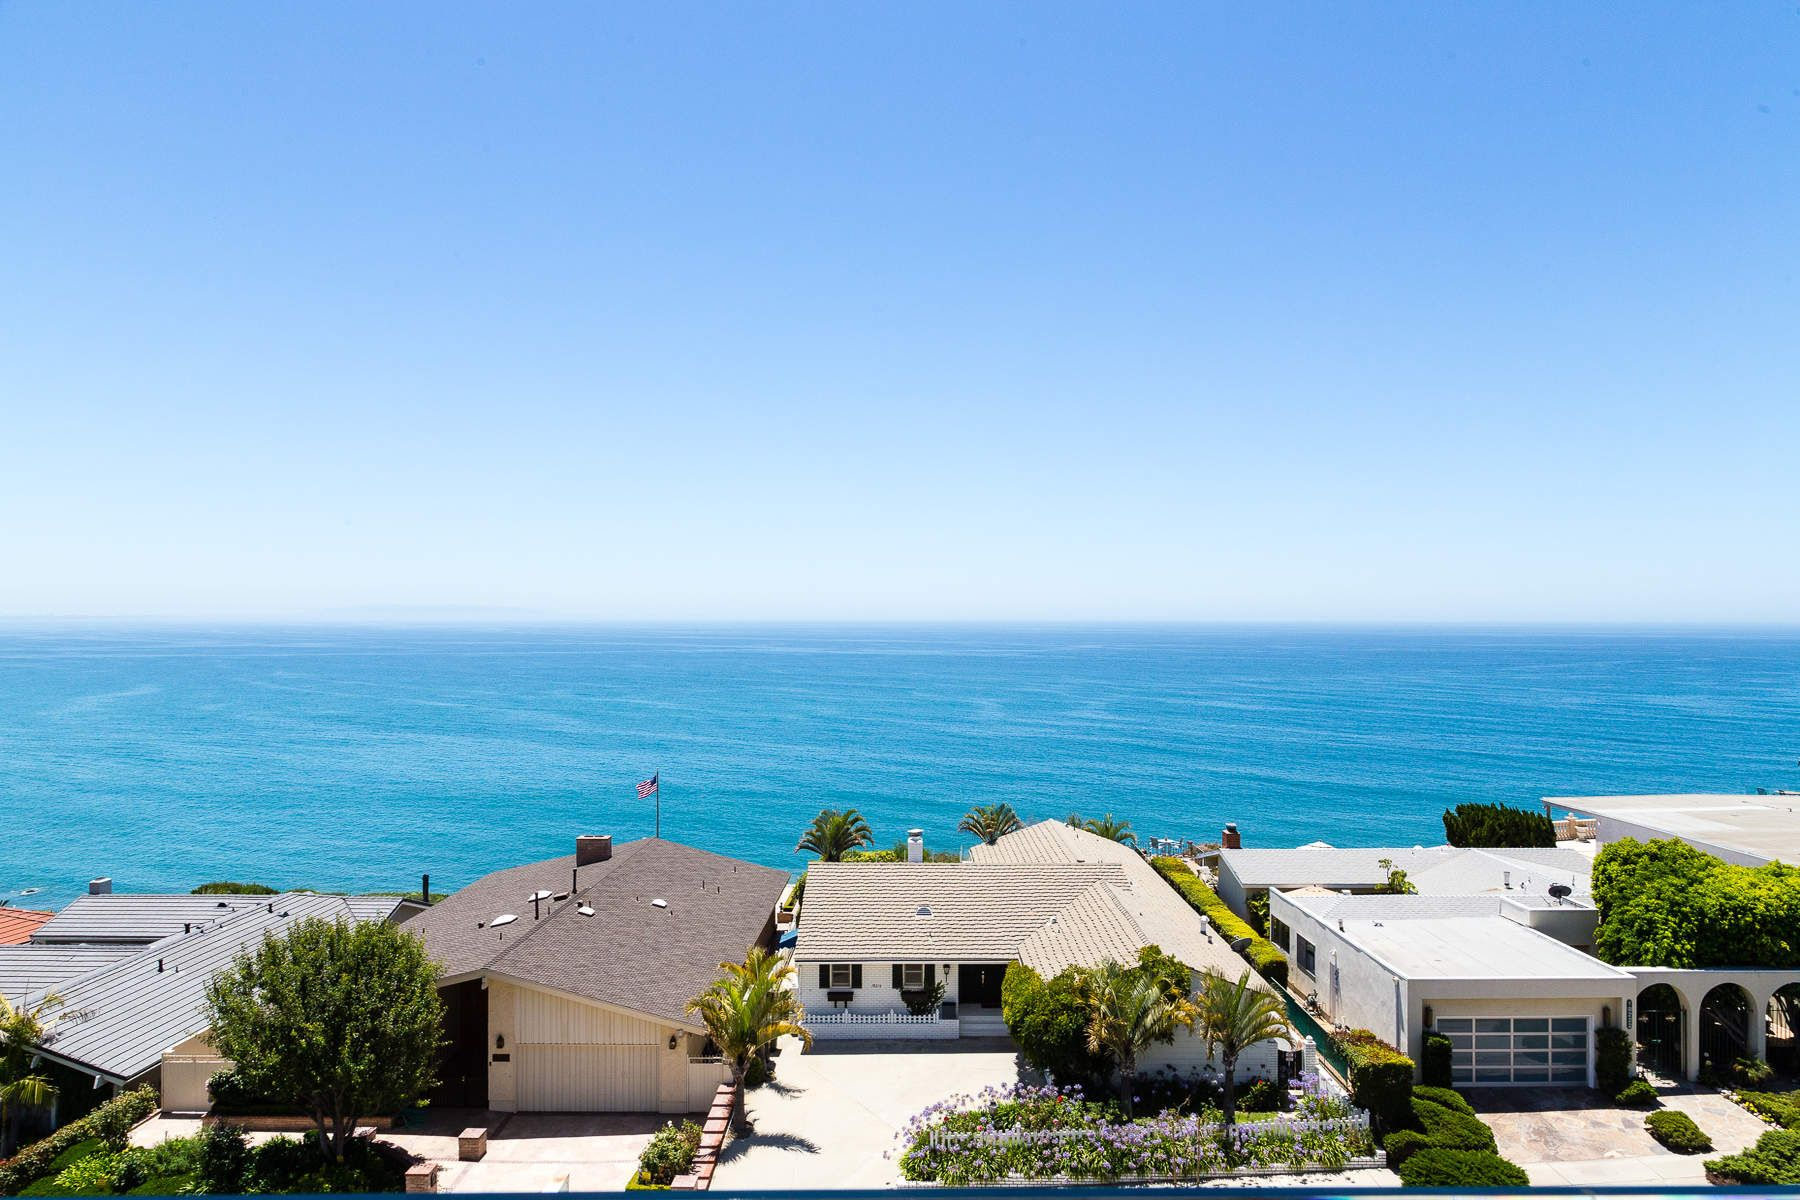 Condominium for Sale at Off-Market With Unbelievable Views Malibu, California, 90265 United States